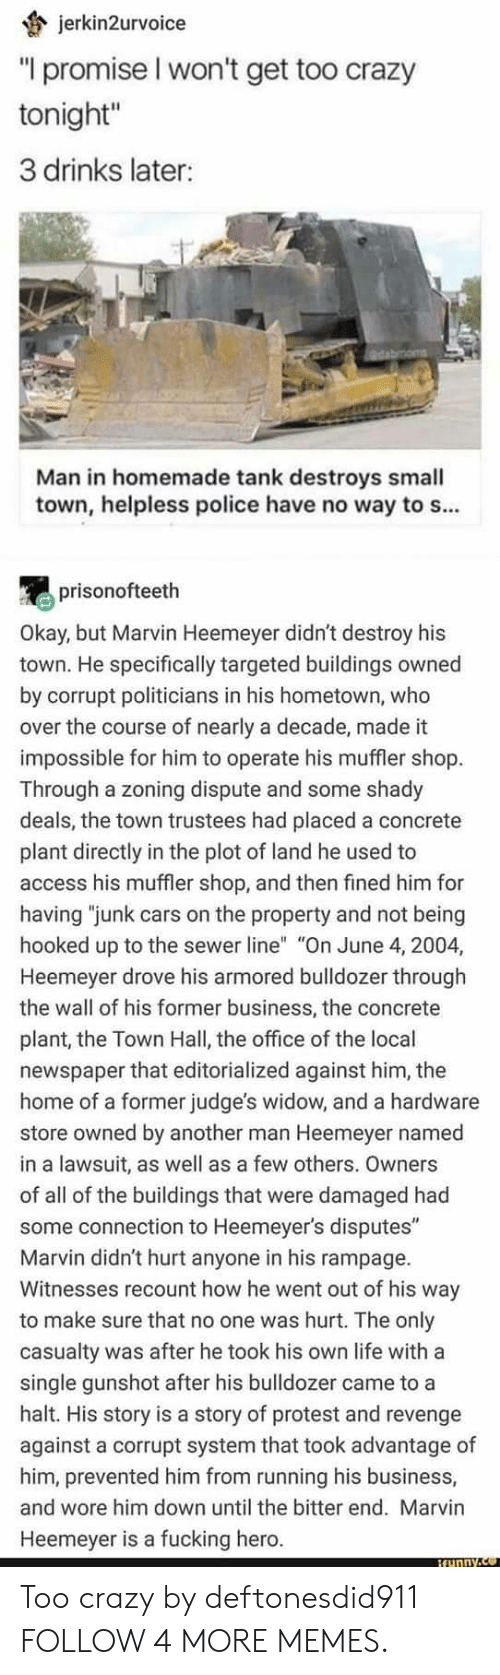 """armored: jerkin2urvoice  """"I promise I won't get too crazy  tonight""""  3 drinks later:  Man in homemade tank destroys small  town, helpless police have no way to s...  prisonofteeth  Okay, but Marvin Heemeyer didn't destroy his  town. He specifically targeted buildings owned  by corrupt politicians in his hometown, who  over the course of nearly a decade, made it  impossible for him to operate his muffler shop.  Through a zoning dispute and some shady  deals, the town trustees had placed a concrete  plant directly in the plot of land he used to  access his muffler shop, and then fined him for  having """"junk cars on the property and not being  hooked up to the sewer line"""" """"On June 4, 2004,  Heemeyer drove his armored bulldozer through  the wall of his former business, the concrete  plant, the Town Hall, the office of the local  newspaper that editorialized against him, the  home of a former judge's widow, and a hardware  store owned by another man Heemeyer named  in a lawsuit, as well as a few others. Owners  of all of the buildings that were damaged had  some connection to Heemeyer's disputes""""  Marvin didn't hurt anyone in his rampage  Witnesses recount how he went out of his way  to make sure that no one was hurt. The only  casualty was after he took his own life with a  single gunshot after his bulldozer came to a  halt. His story is a story of protest and revenge  against a corrupt system that took advantage of  him, prevented him from running his business,  and wore him down until the bitter end. Marvin  Heemeyer is a fucking hero.  BEunny.co Too crazy by deftonesdid911 FOLLOW 4 MORE MEMES."""